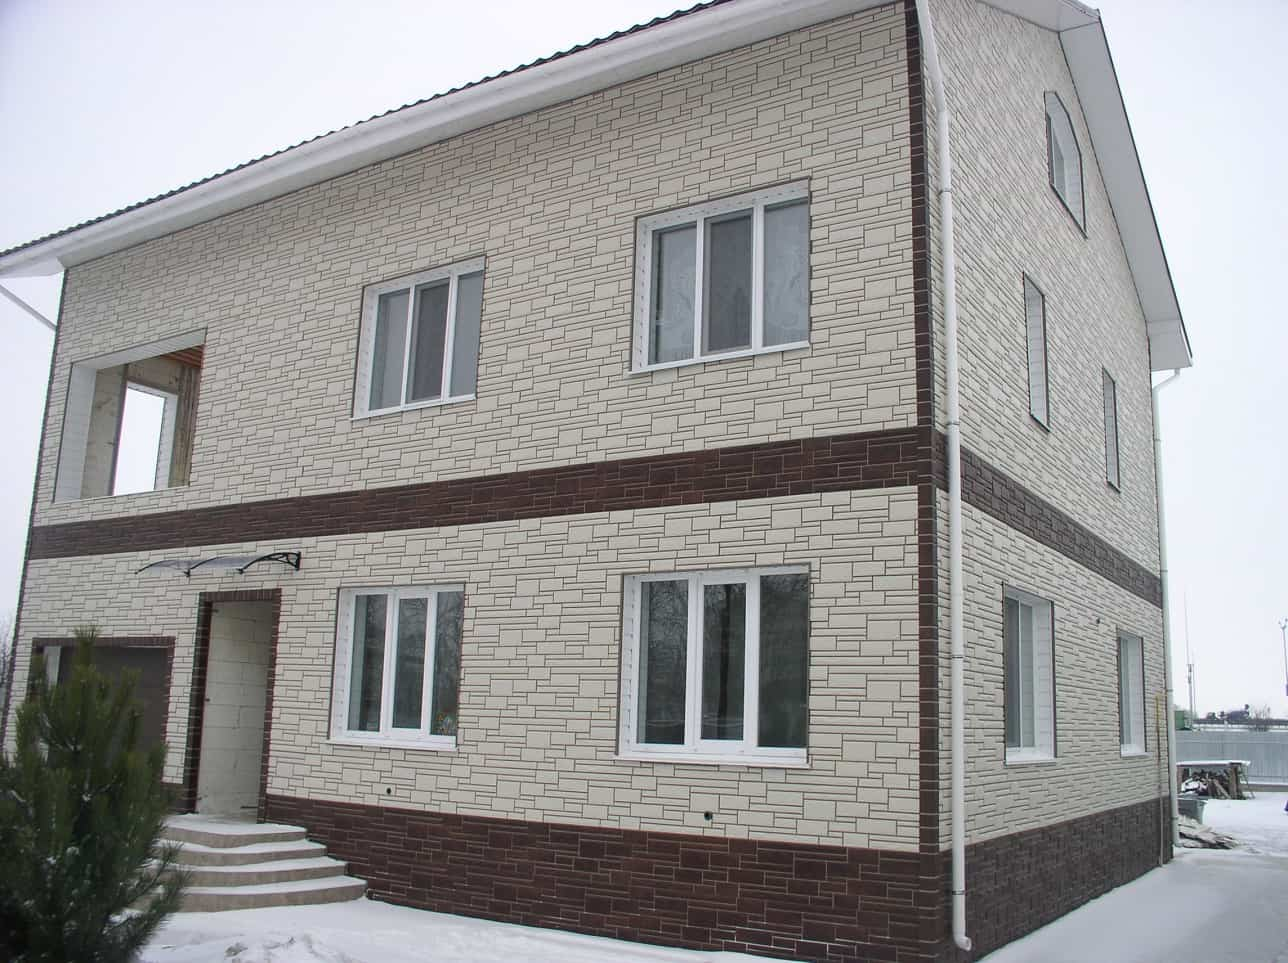 5 Tips On Choosing The Right Cladding For Your House. Simple casual exterior of the two-story house in light stone finishing